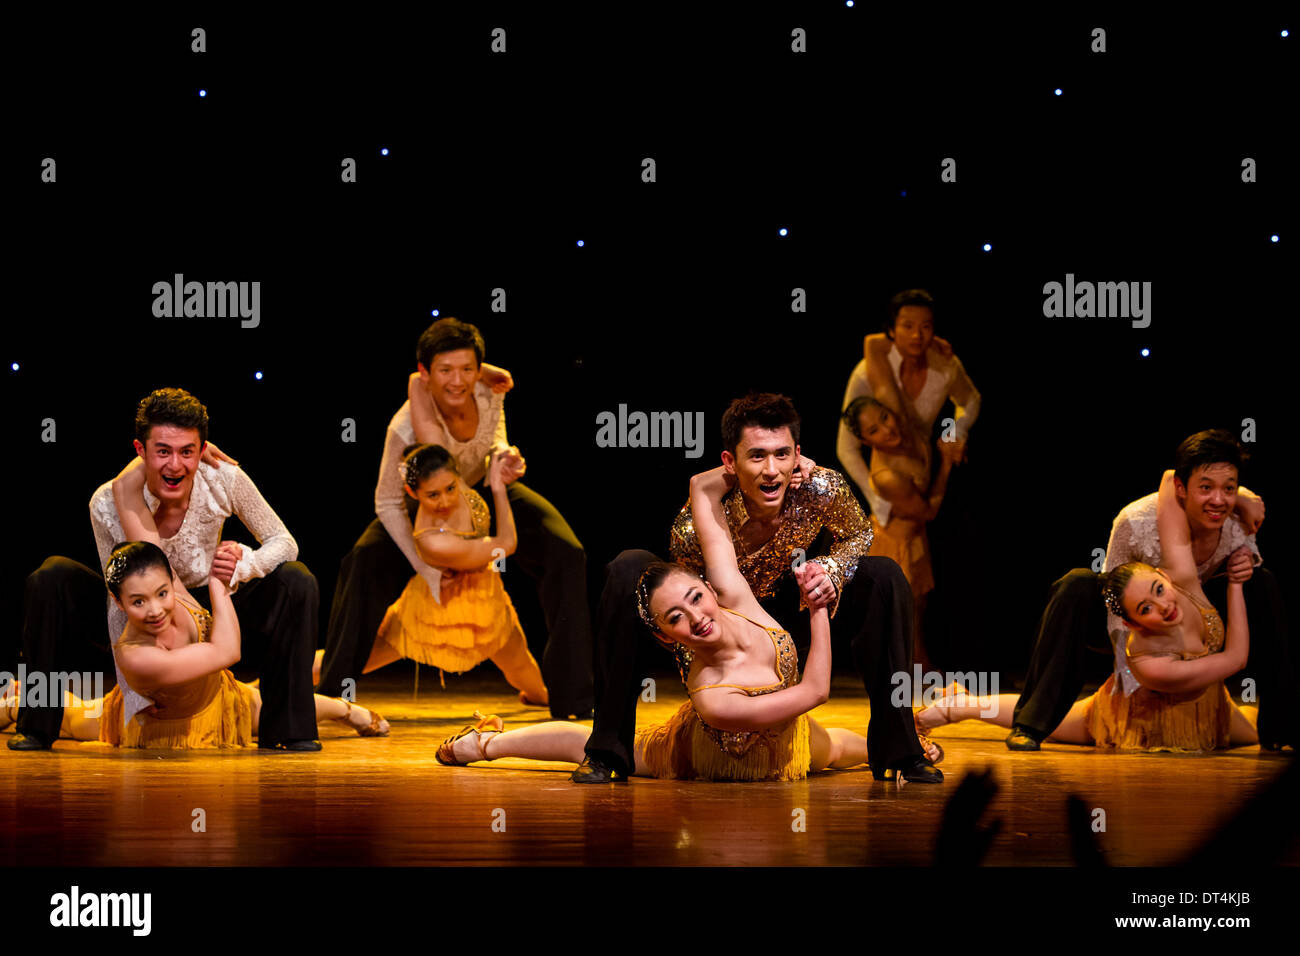 Havana. 8th Feb, 2014. Members of the China Disabled People's Performing Art Troupe perform at Havana's National Theater in Cuba, Feb. 8, 2014. © Liu Bin/Xinhua/Alamy Live News - Stock Image